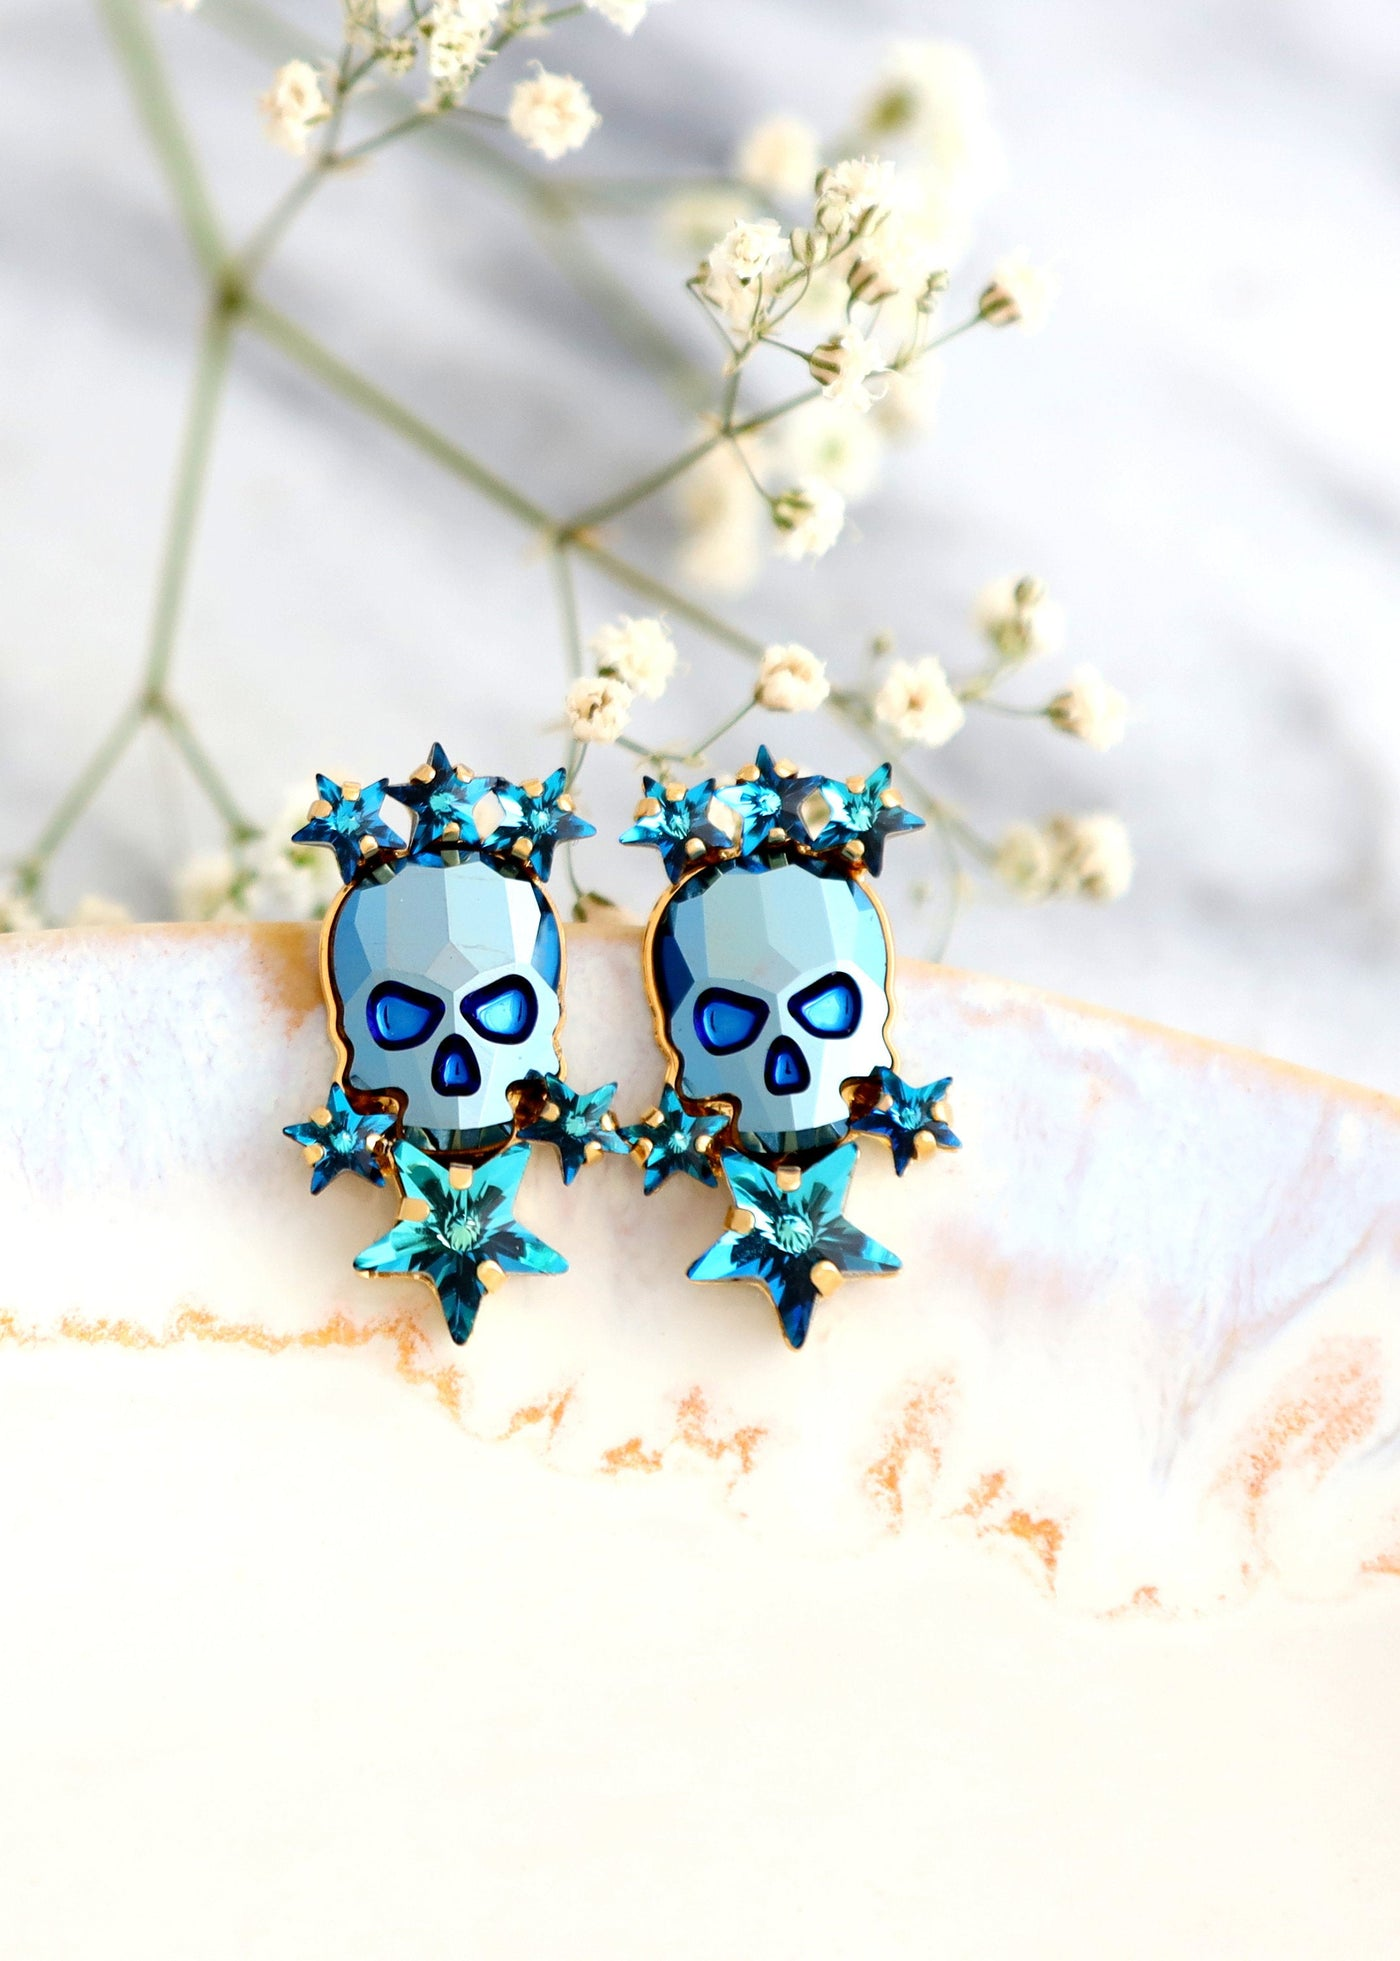 Skull Earrings, Sugar Skull Earrings, Blue Skull Stud Earrings, Gothic Bride Jewelry, Skull Bridal Earrings, Gift For Her, Blue Earrings